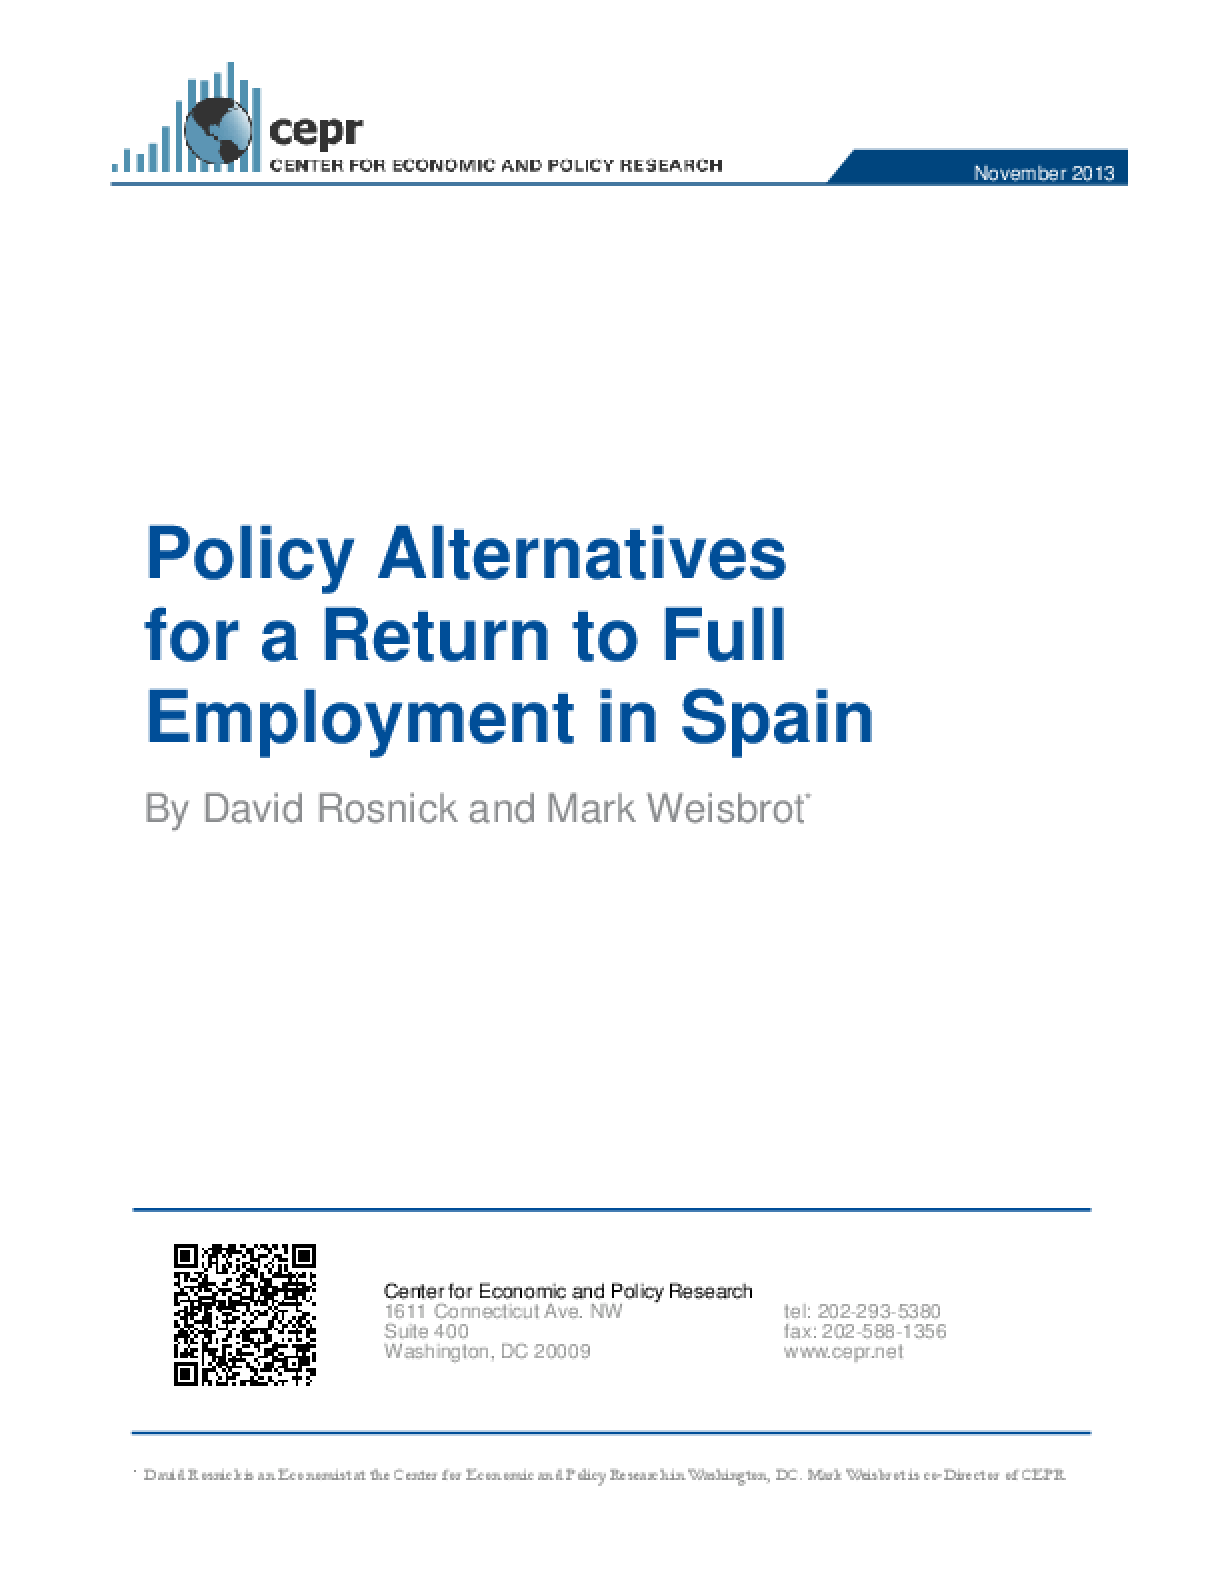 Policy Alternatives for a Return to Full Employment in Spain